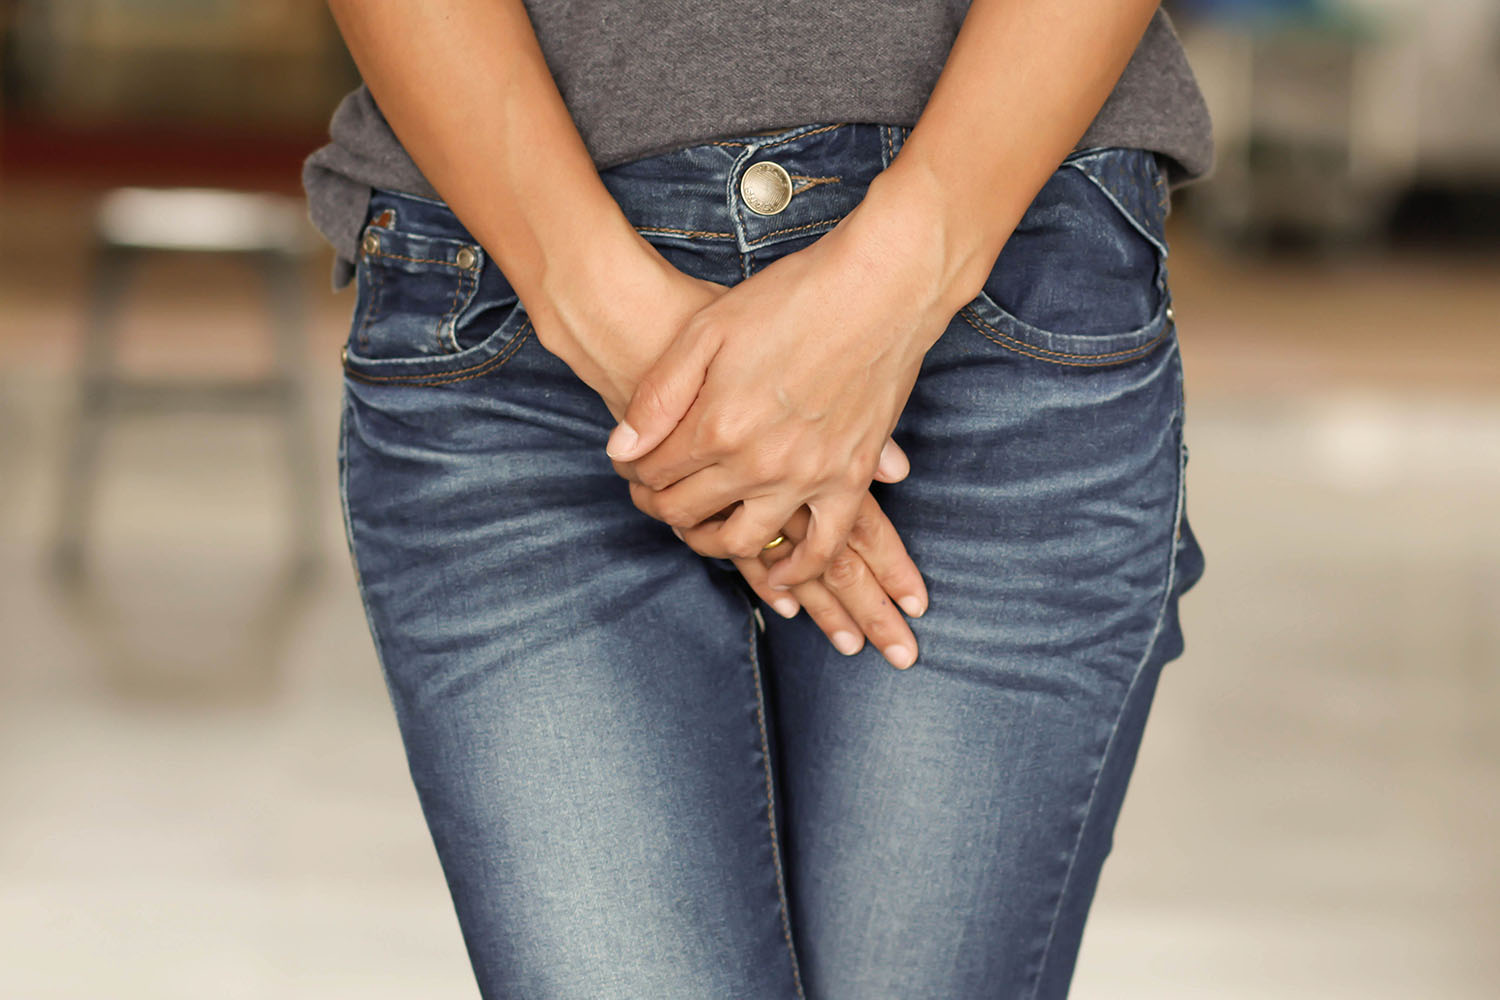 What is a pelvic floor?